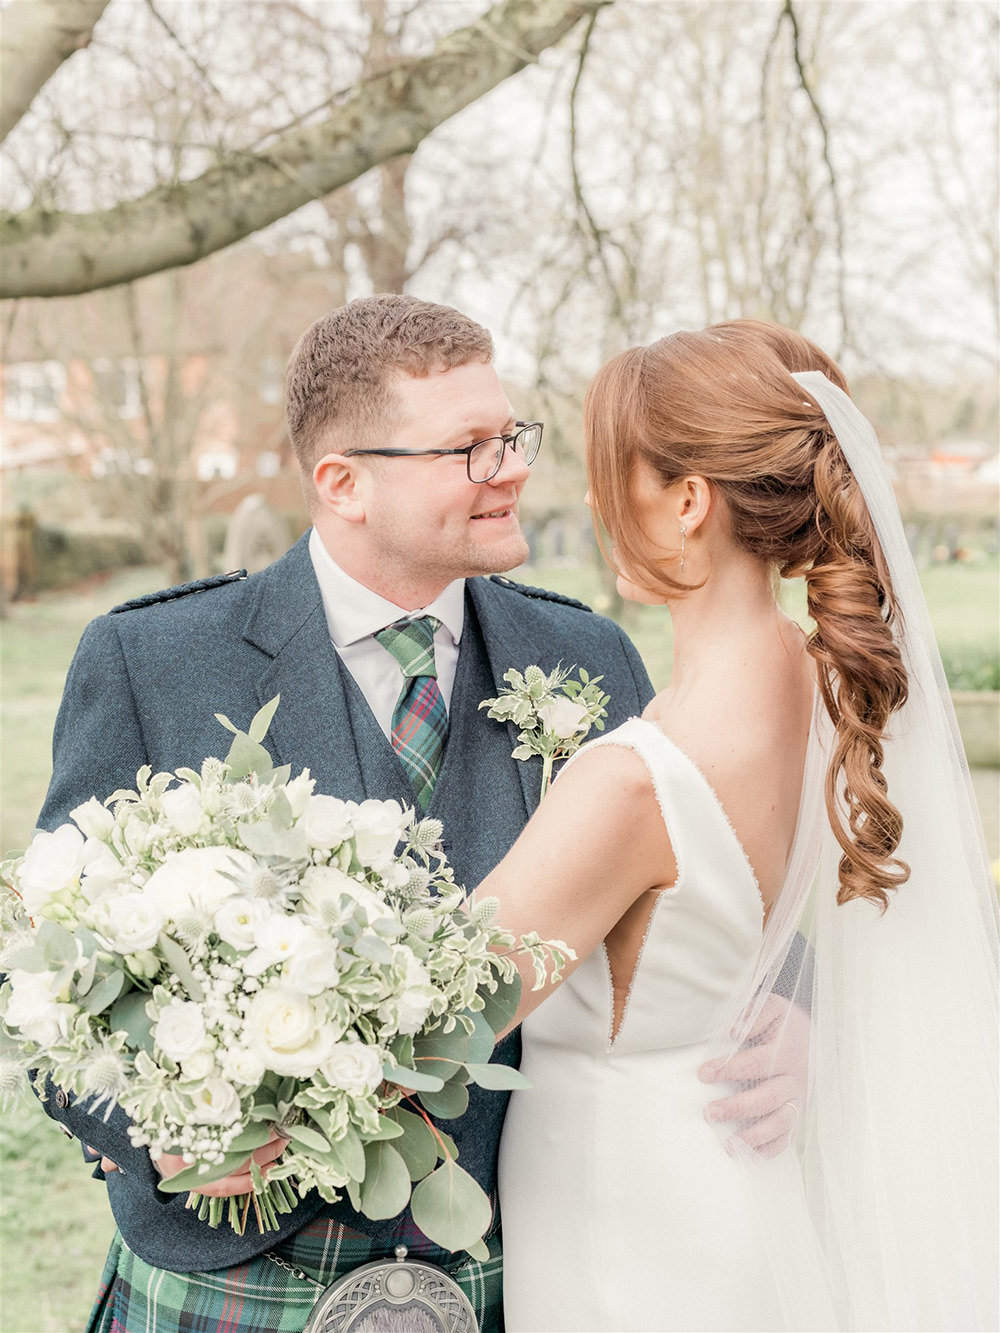 Bride Bridal Hair Style Up Do Pony Tail Veil Lockdown Wedding Carn Patrick Photography